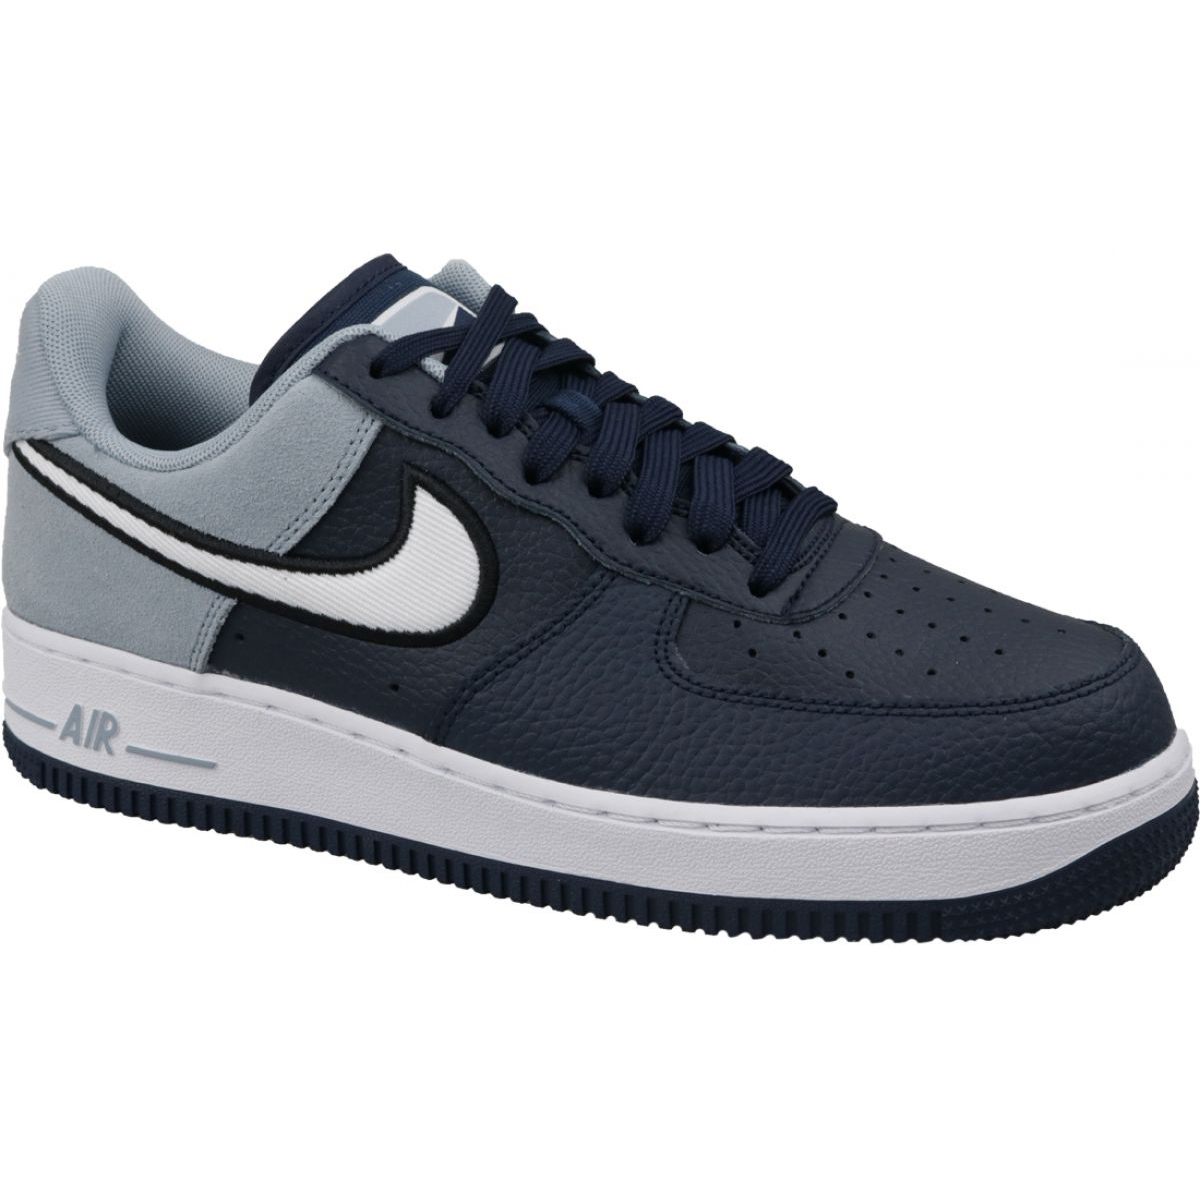 Details about Navy Nike Air Force 1 '07 M AO2439 400